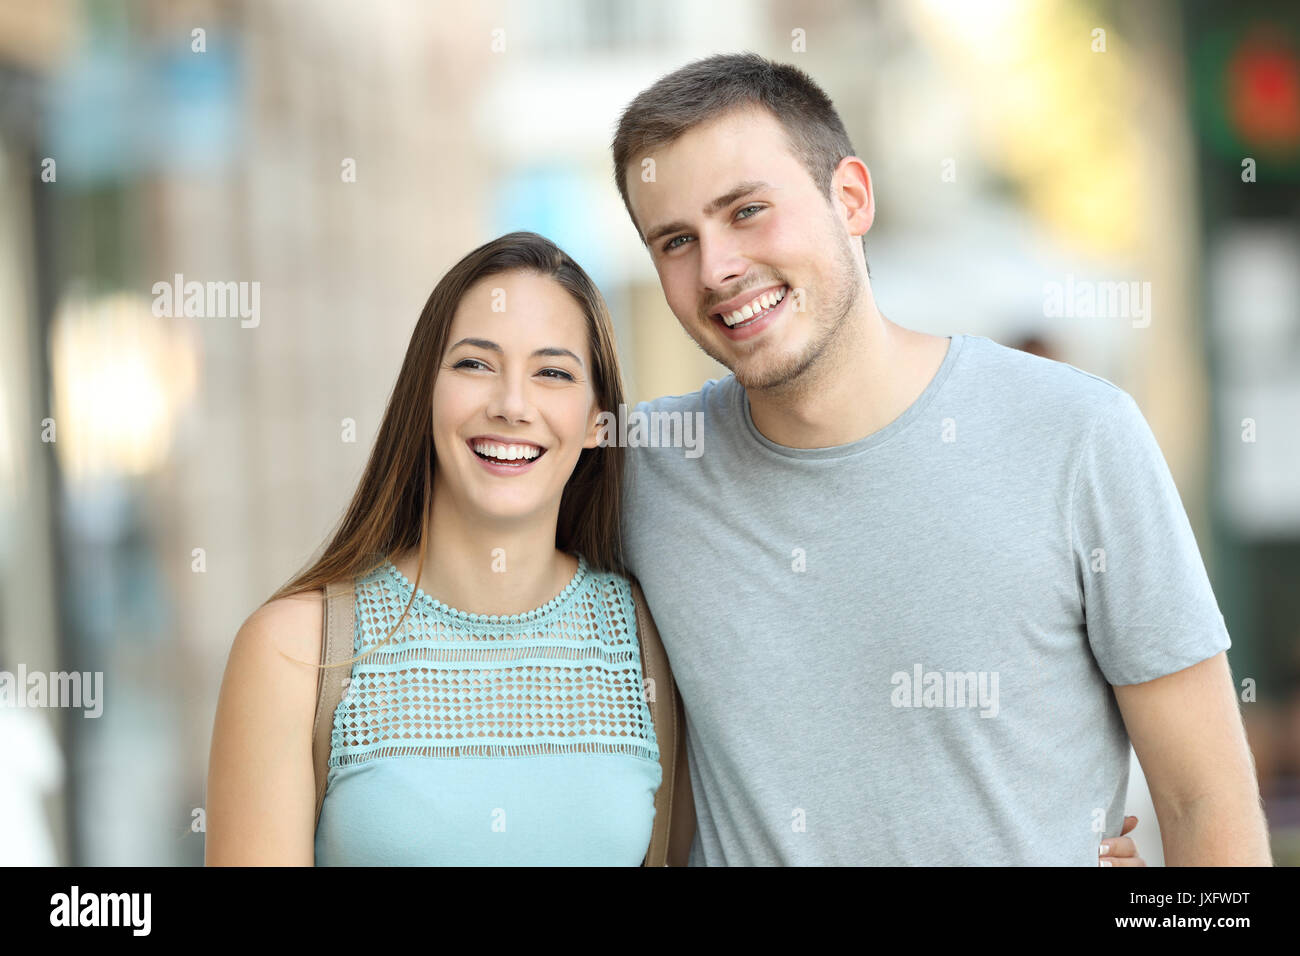 Front view portrait of a happy couple walking together on the street - Stock Image